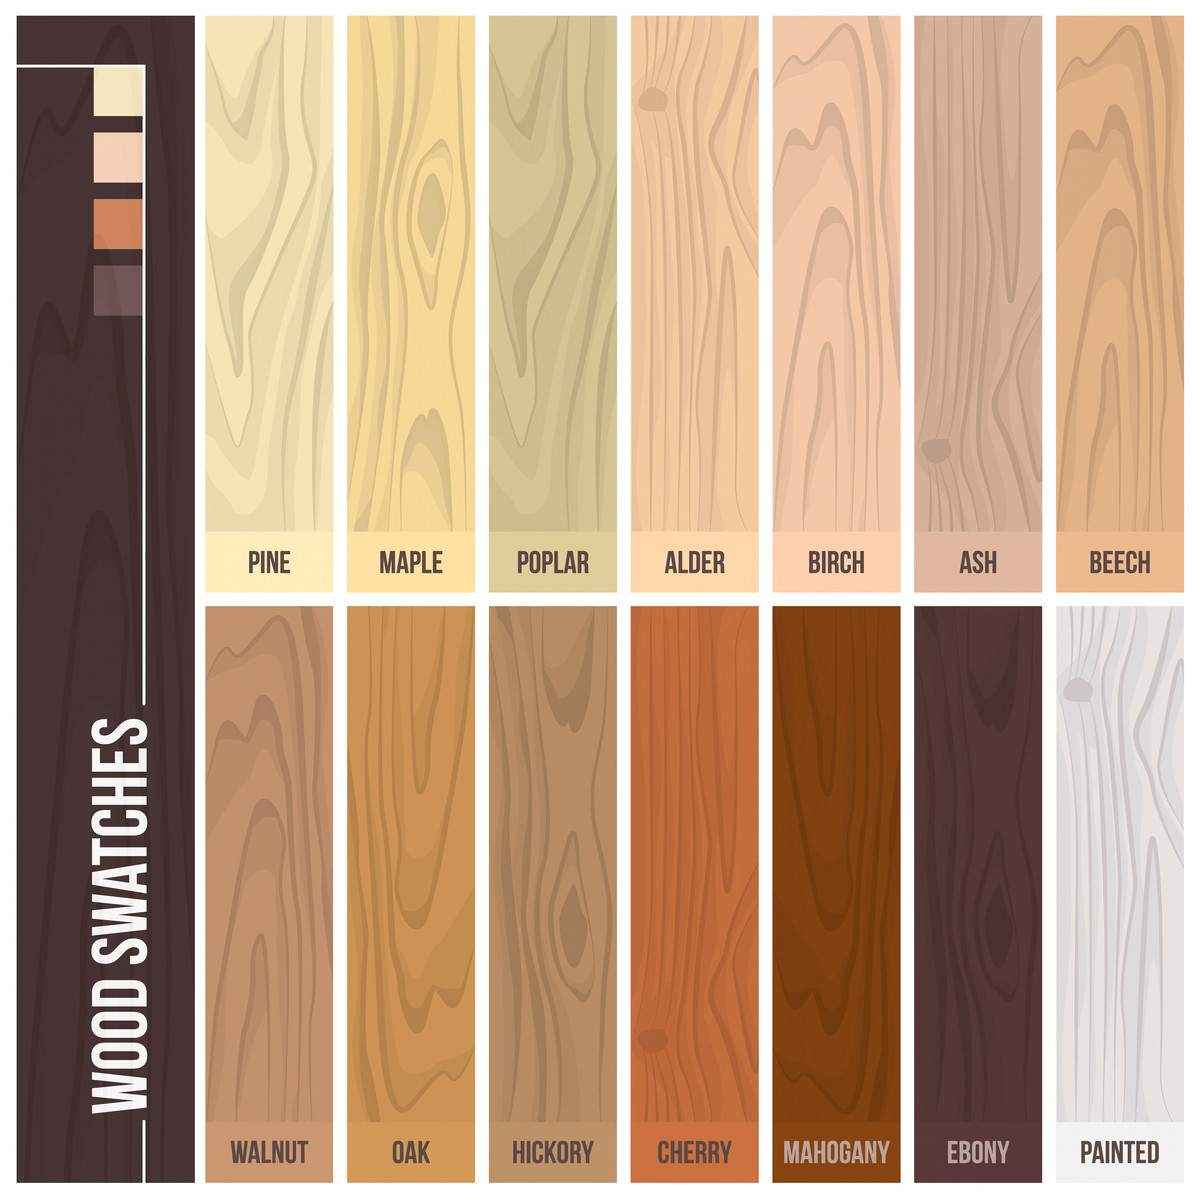 cost of hardwood vs engineered flooring of 12 types of hardwood flooring species styles edging dimensions for types of hardwood flooring illustrated guide